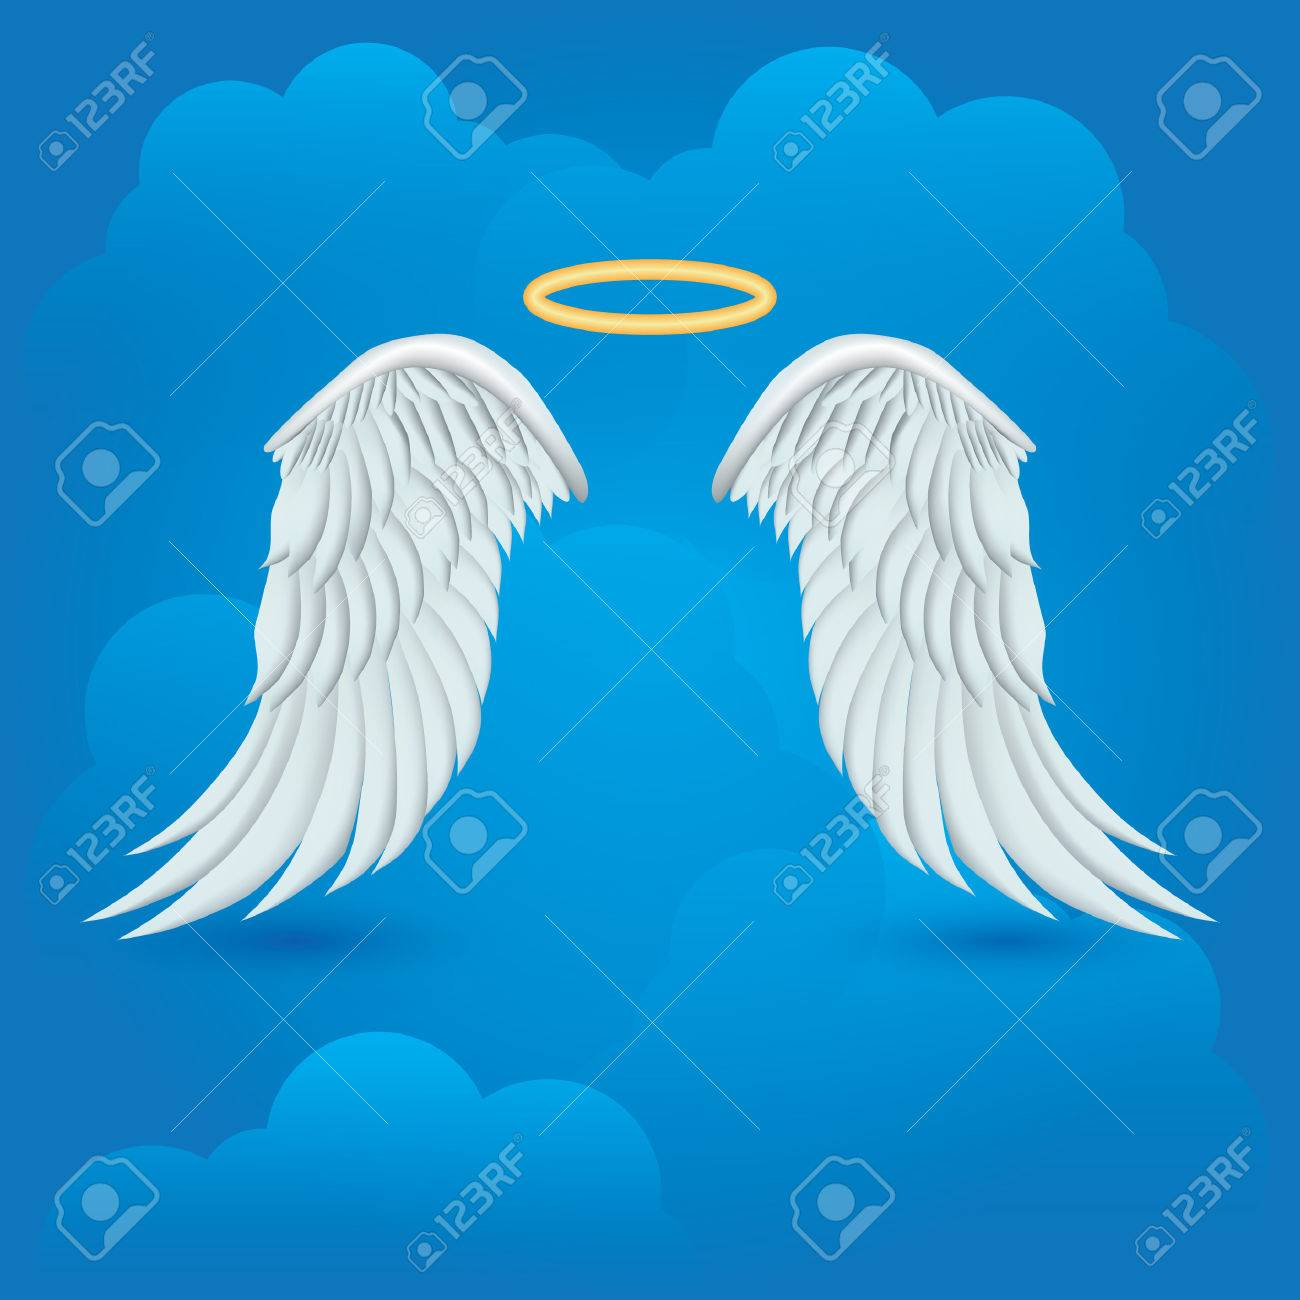 944af14f8 Angel Wings With Halo On Cloud Background Royalty Free Cliparts ...